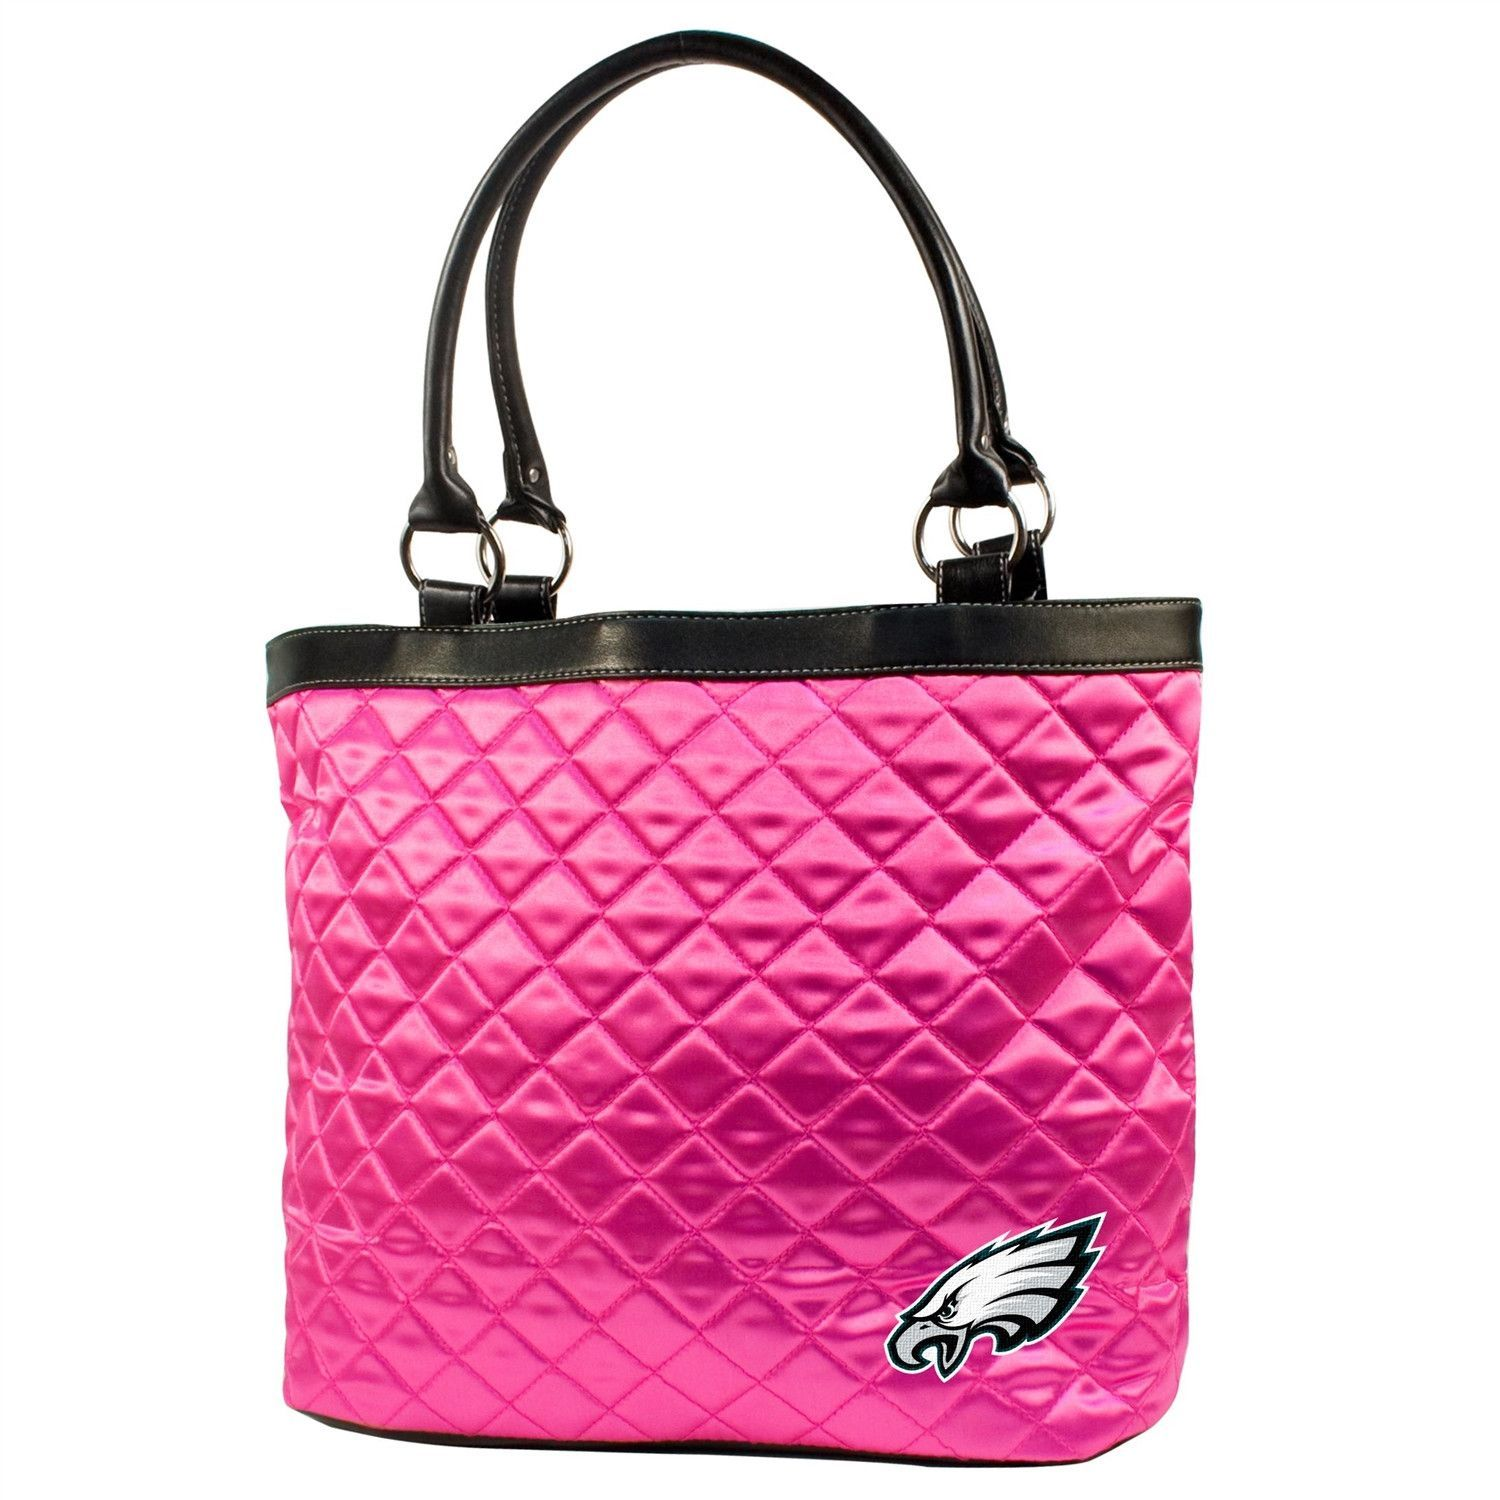 Philadelphia Eagles Pink Quilted Tote Quilted totes